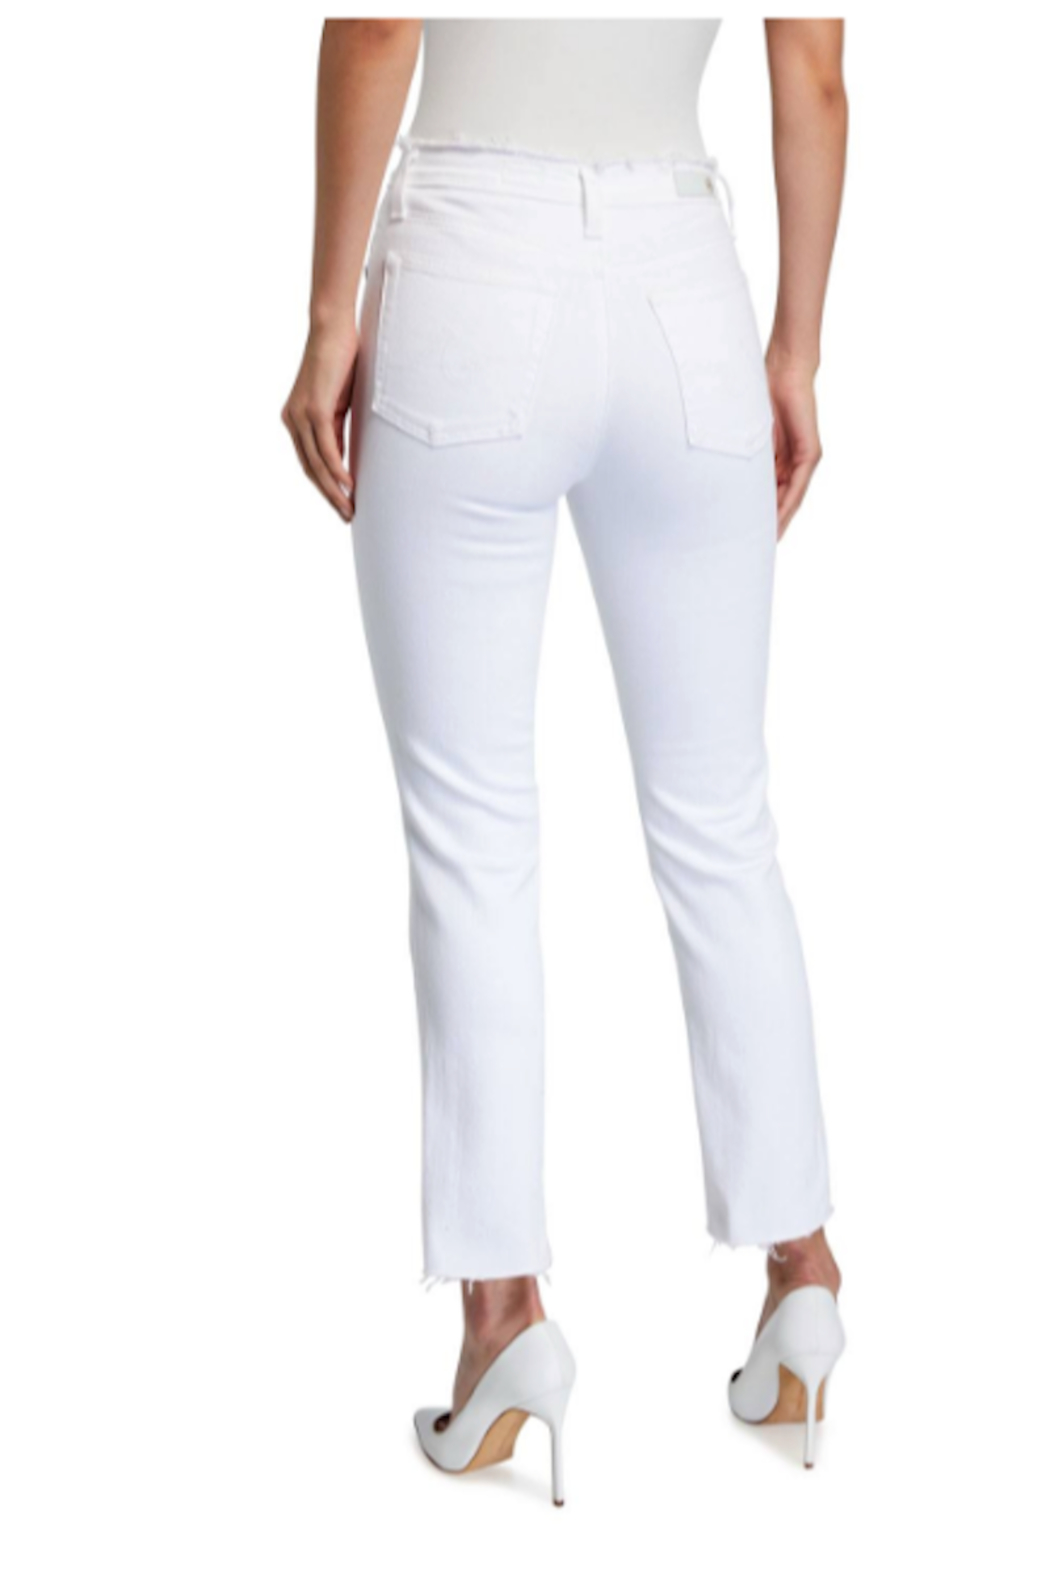 AG Adriano Goldschmied isabelle jeans white - Front Full Image